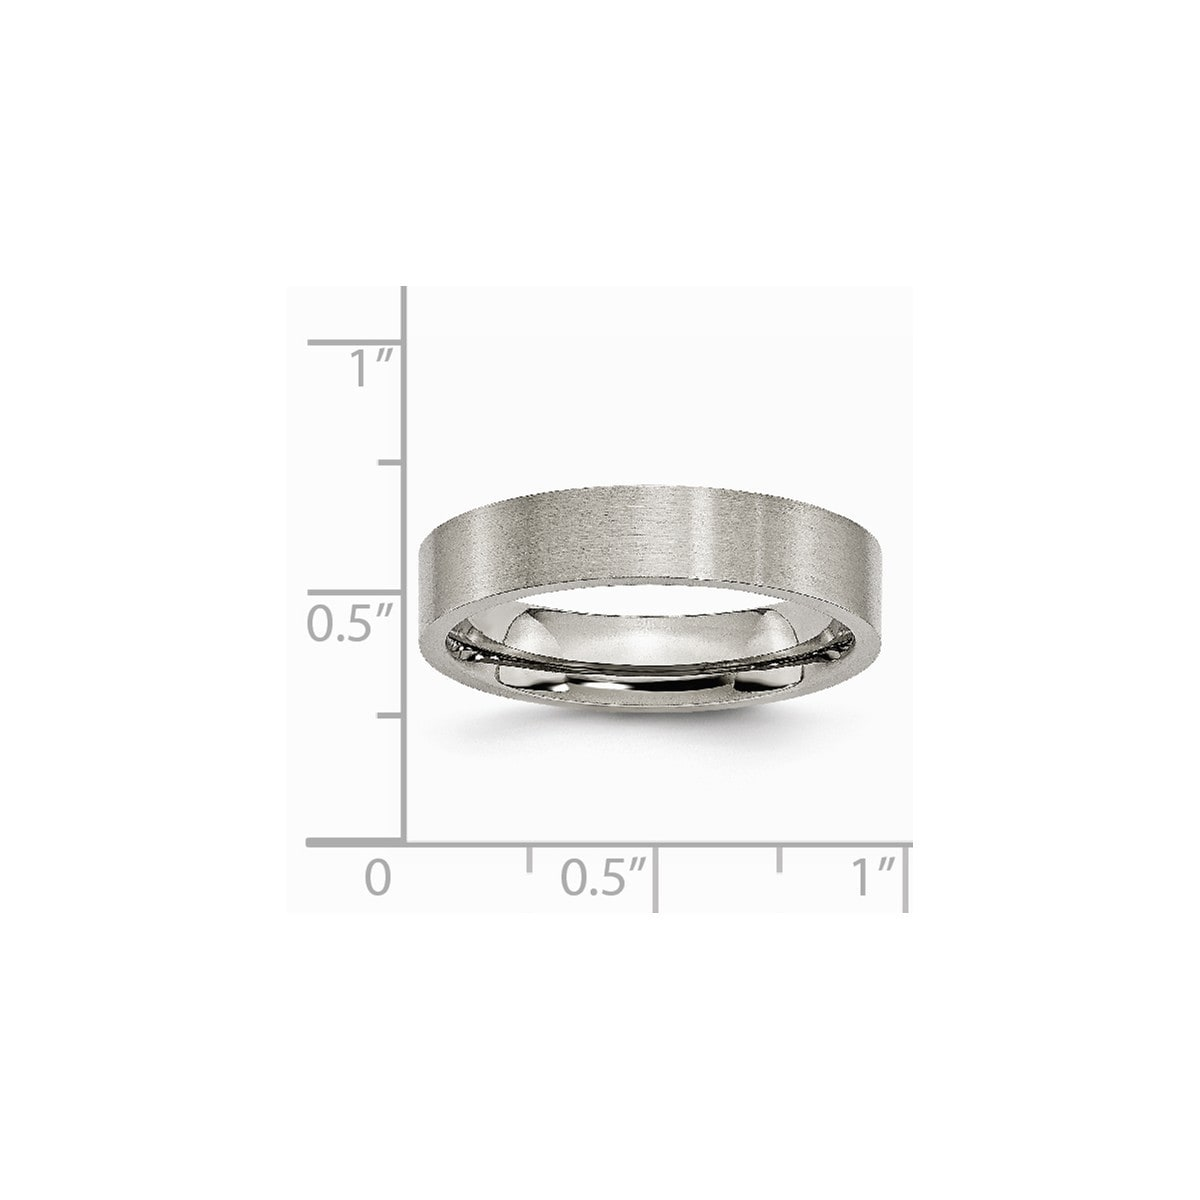 Titanium Ridged Edge 8mm Brushed Wedding Ring Band Size 7.50 Classic Flat Bridal & Wedding Party Jewelry